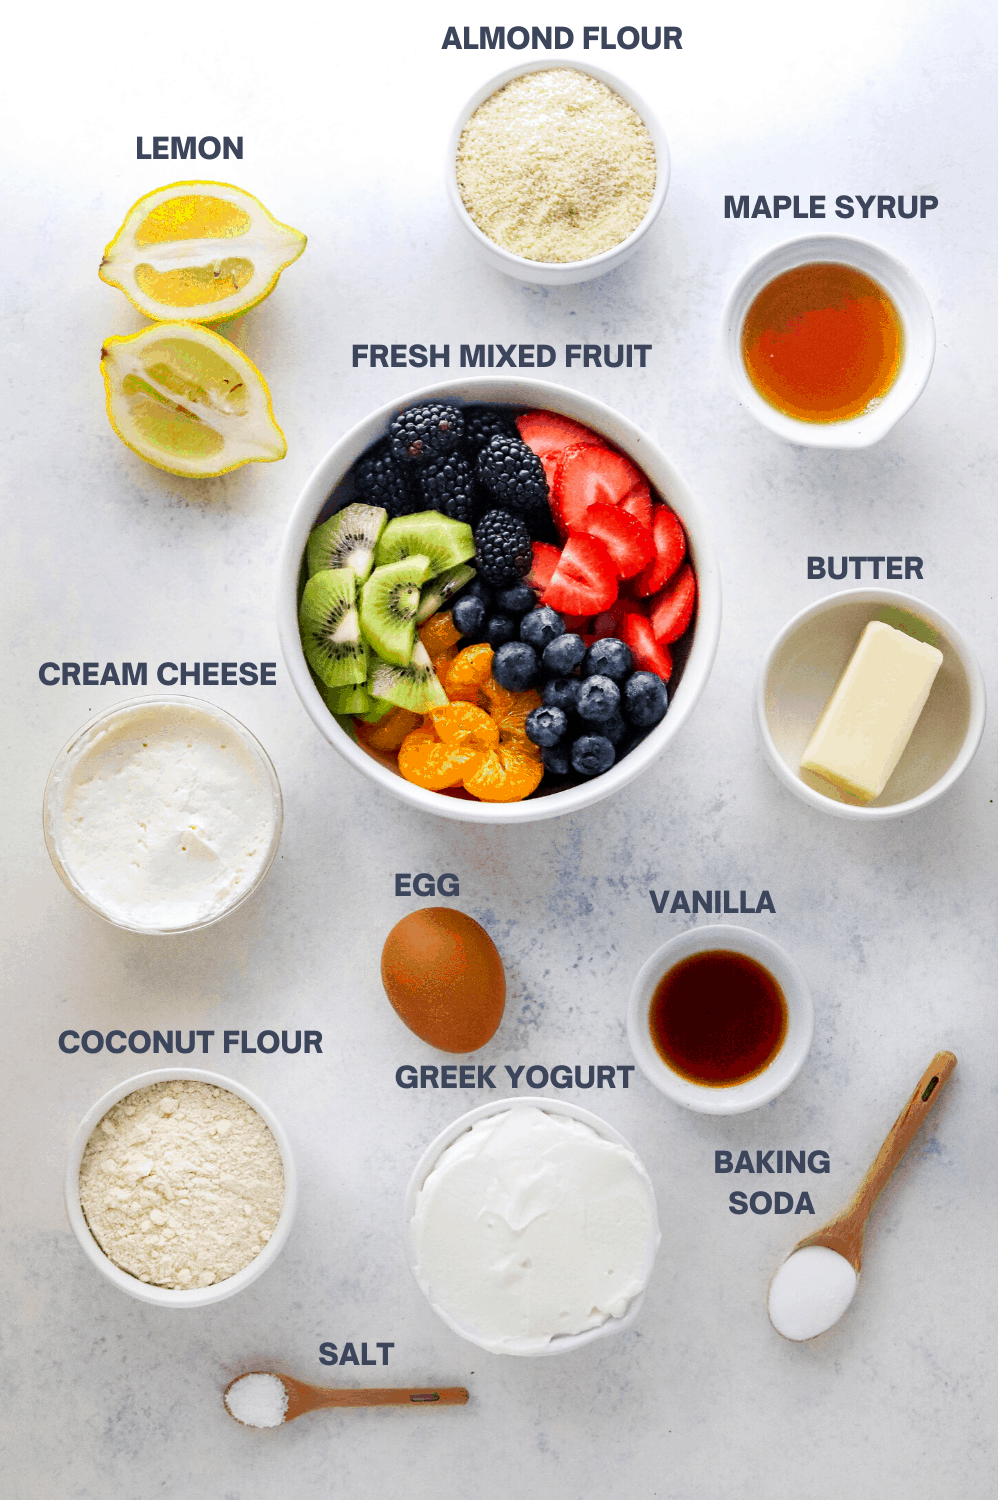 Small white bowl filled with almond flour with a sliced lemon, bowl of mixed fruit, bowl of maple syrup, cream cheese, butter, egg, vanilla, yogurt in bowls in front of it with two wooden measuring spoons in front of it filled with baking soda and salt on a white surface.